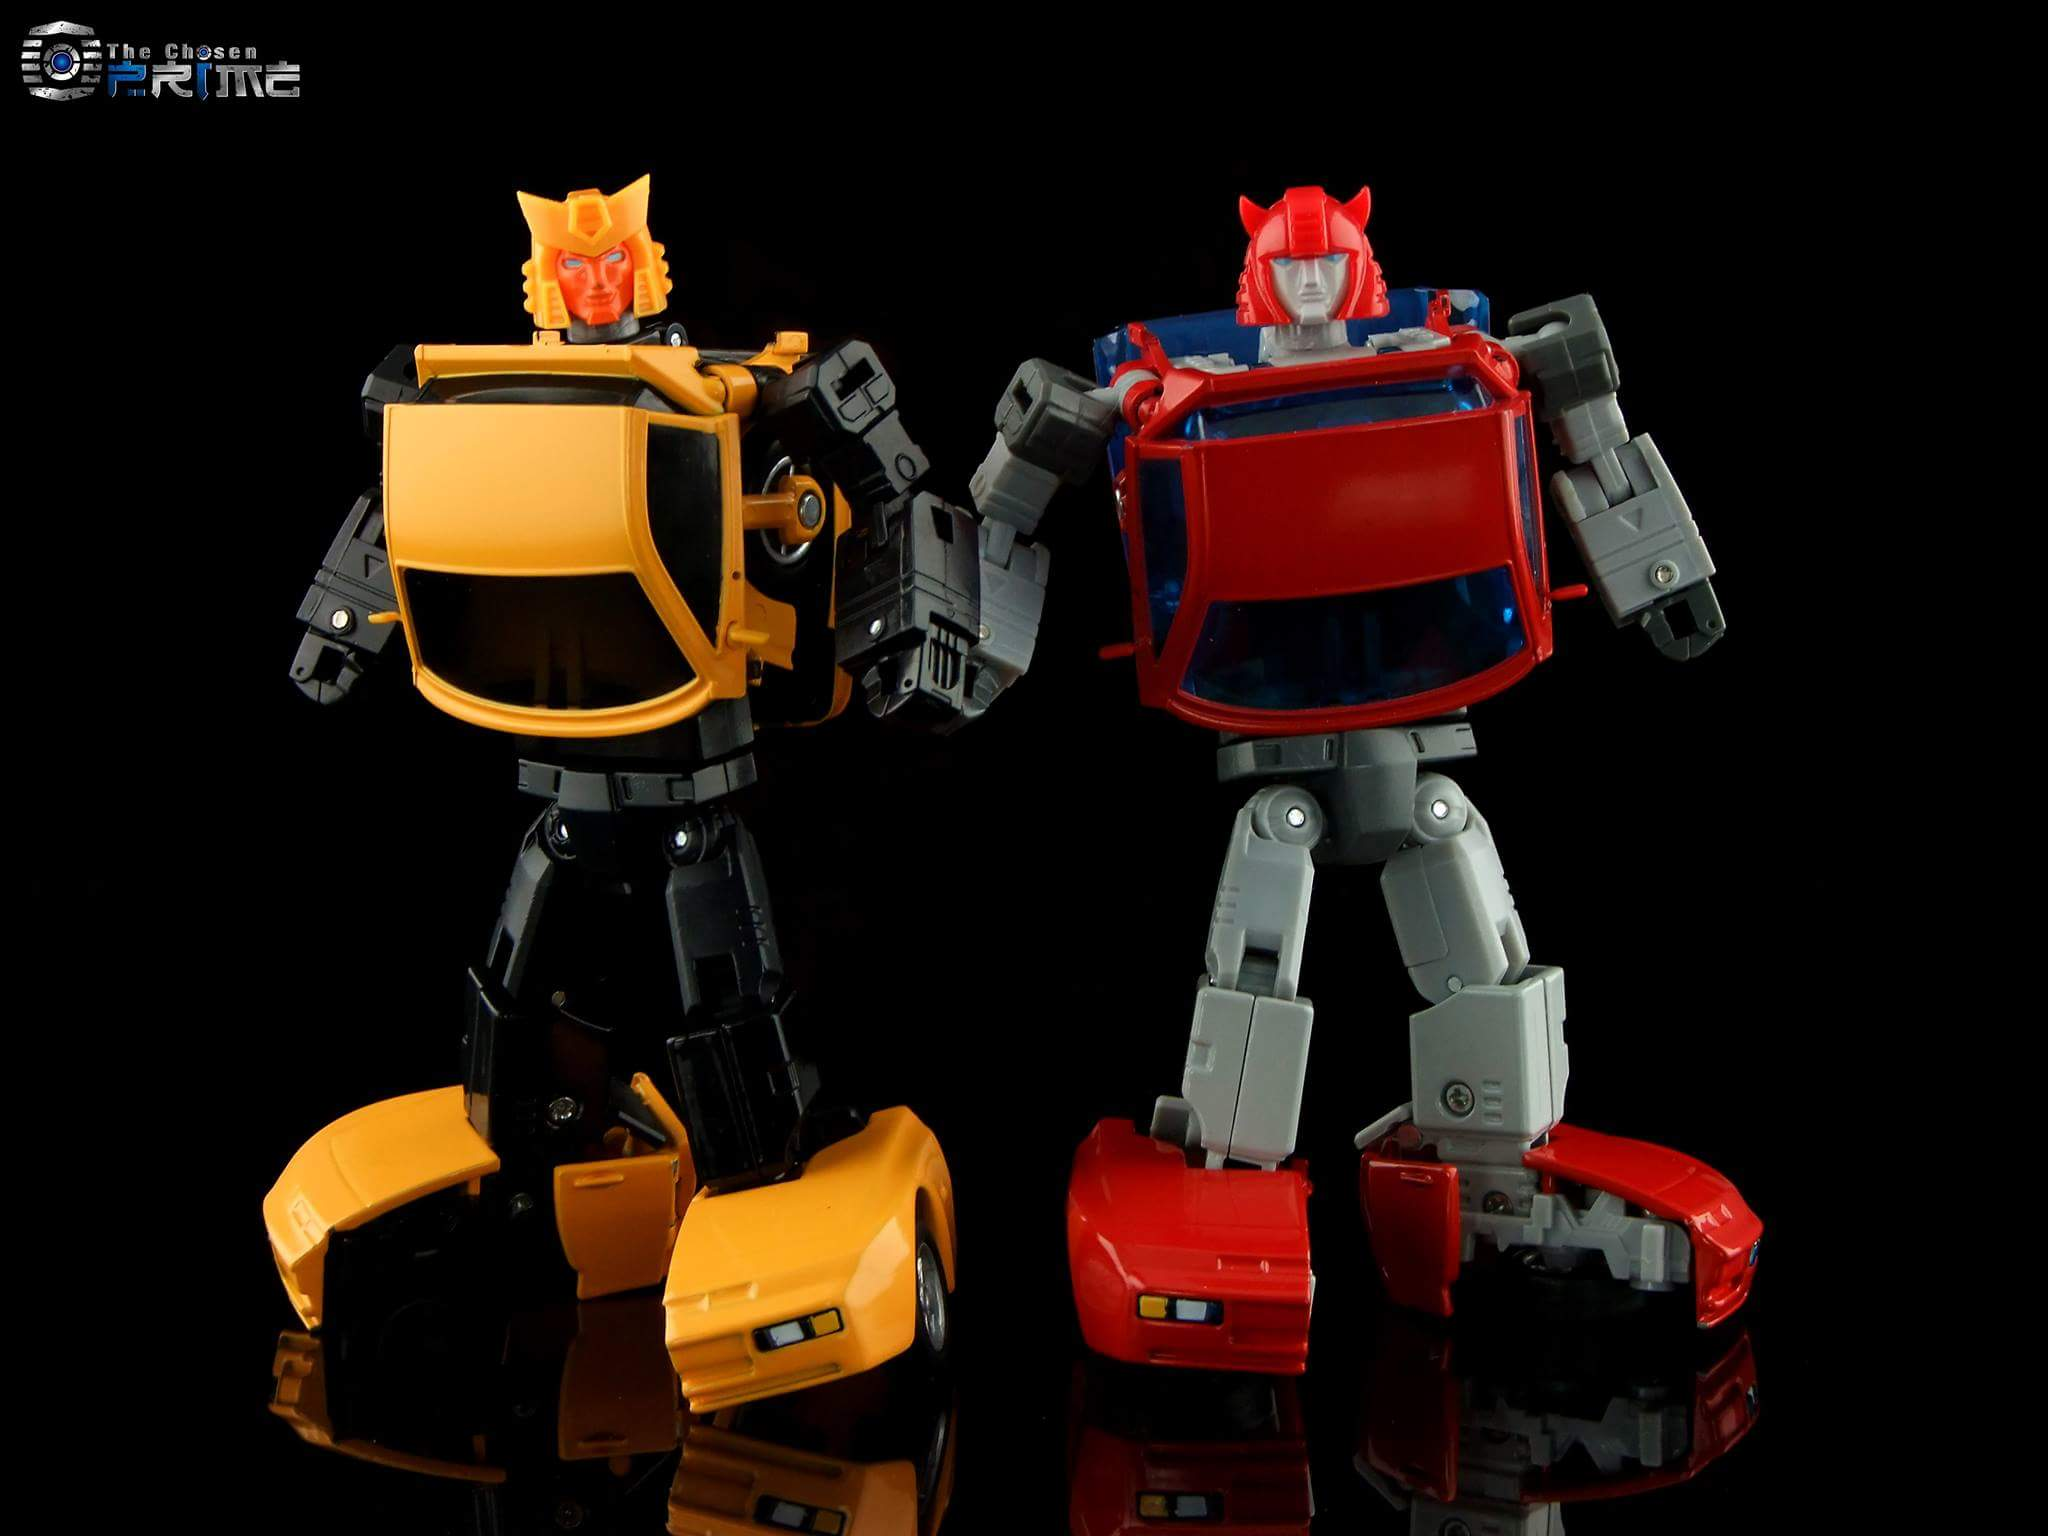 [ACE Collectables] Produit Tiers - Minibots MP - ACE-01 Tumbler (aka Cliffjumper/Matamore), ACE-02 Hiccups (aka Hubcap/Virevolto), ACE-03 Trident (aka Seaspray/Embruns) PU7N2I3n